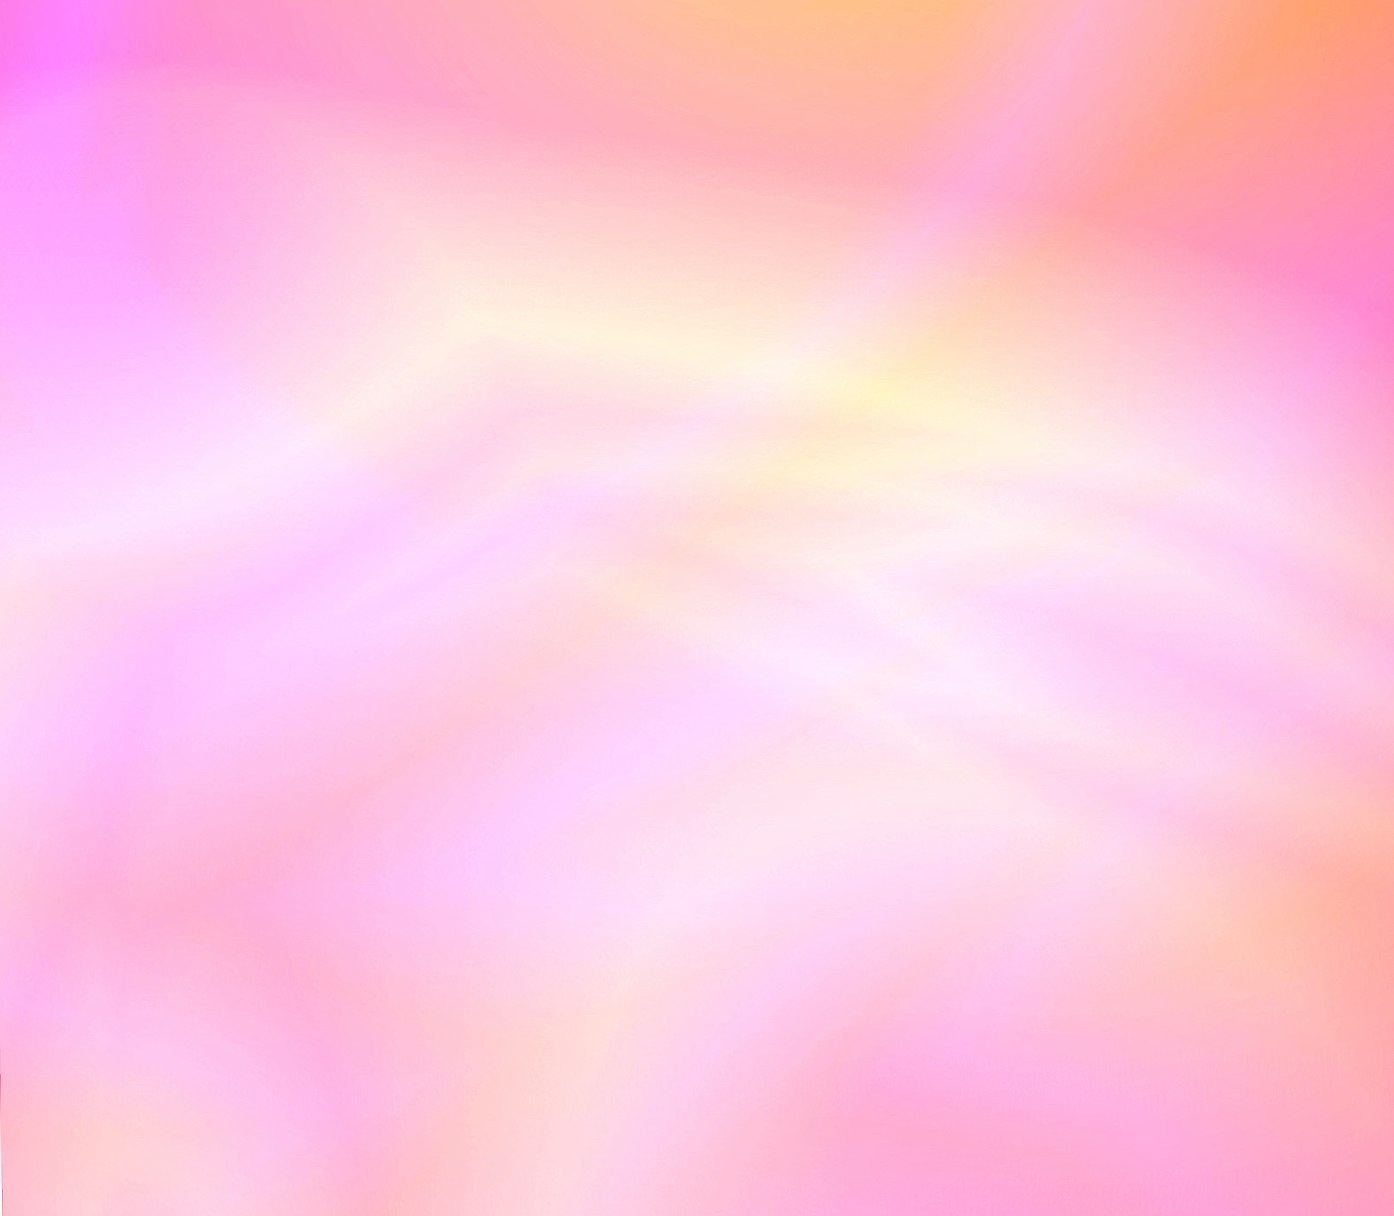 SUMMER COLORS 1 wallpapers HD quality